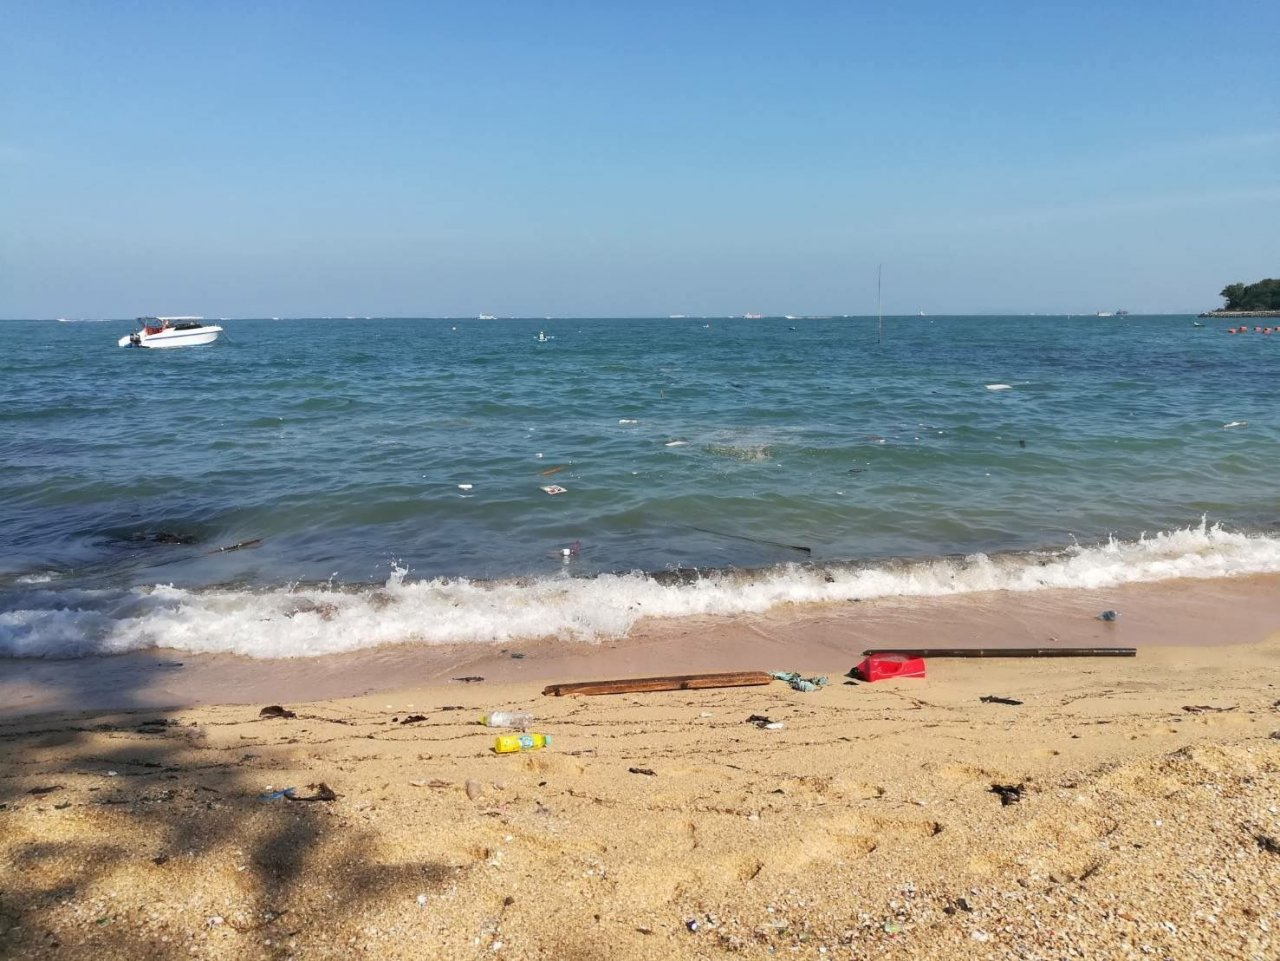 Pattaya beach businesses blame tourist boat operators for rising level of garbage being washed ashore | Samui Times